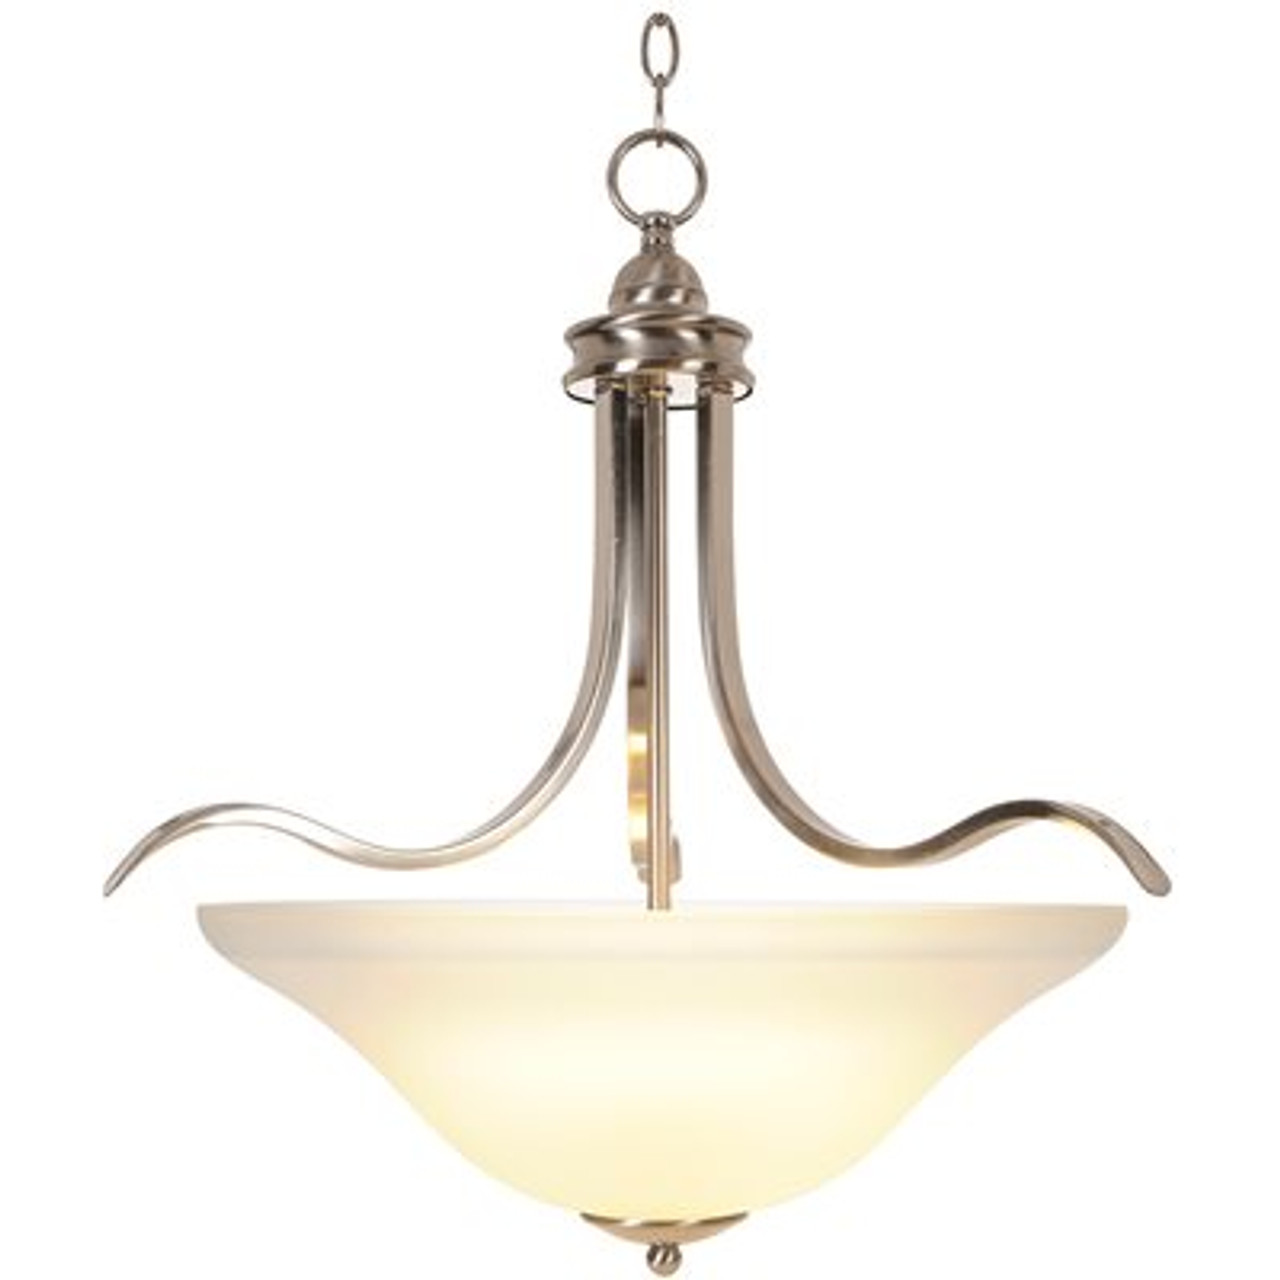 MONUMENT 617247  SANIBEL BRUSHED NICKEL PENDANT LIGHT | BROWN PALLET